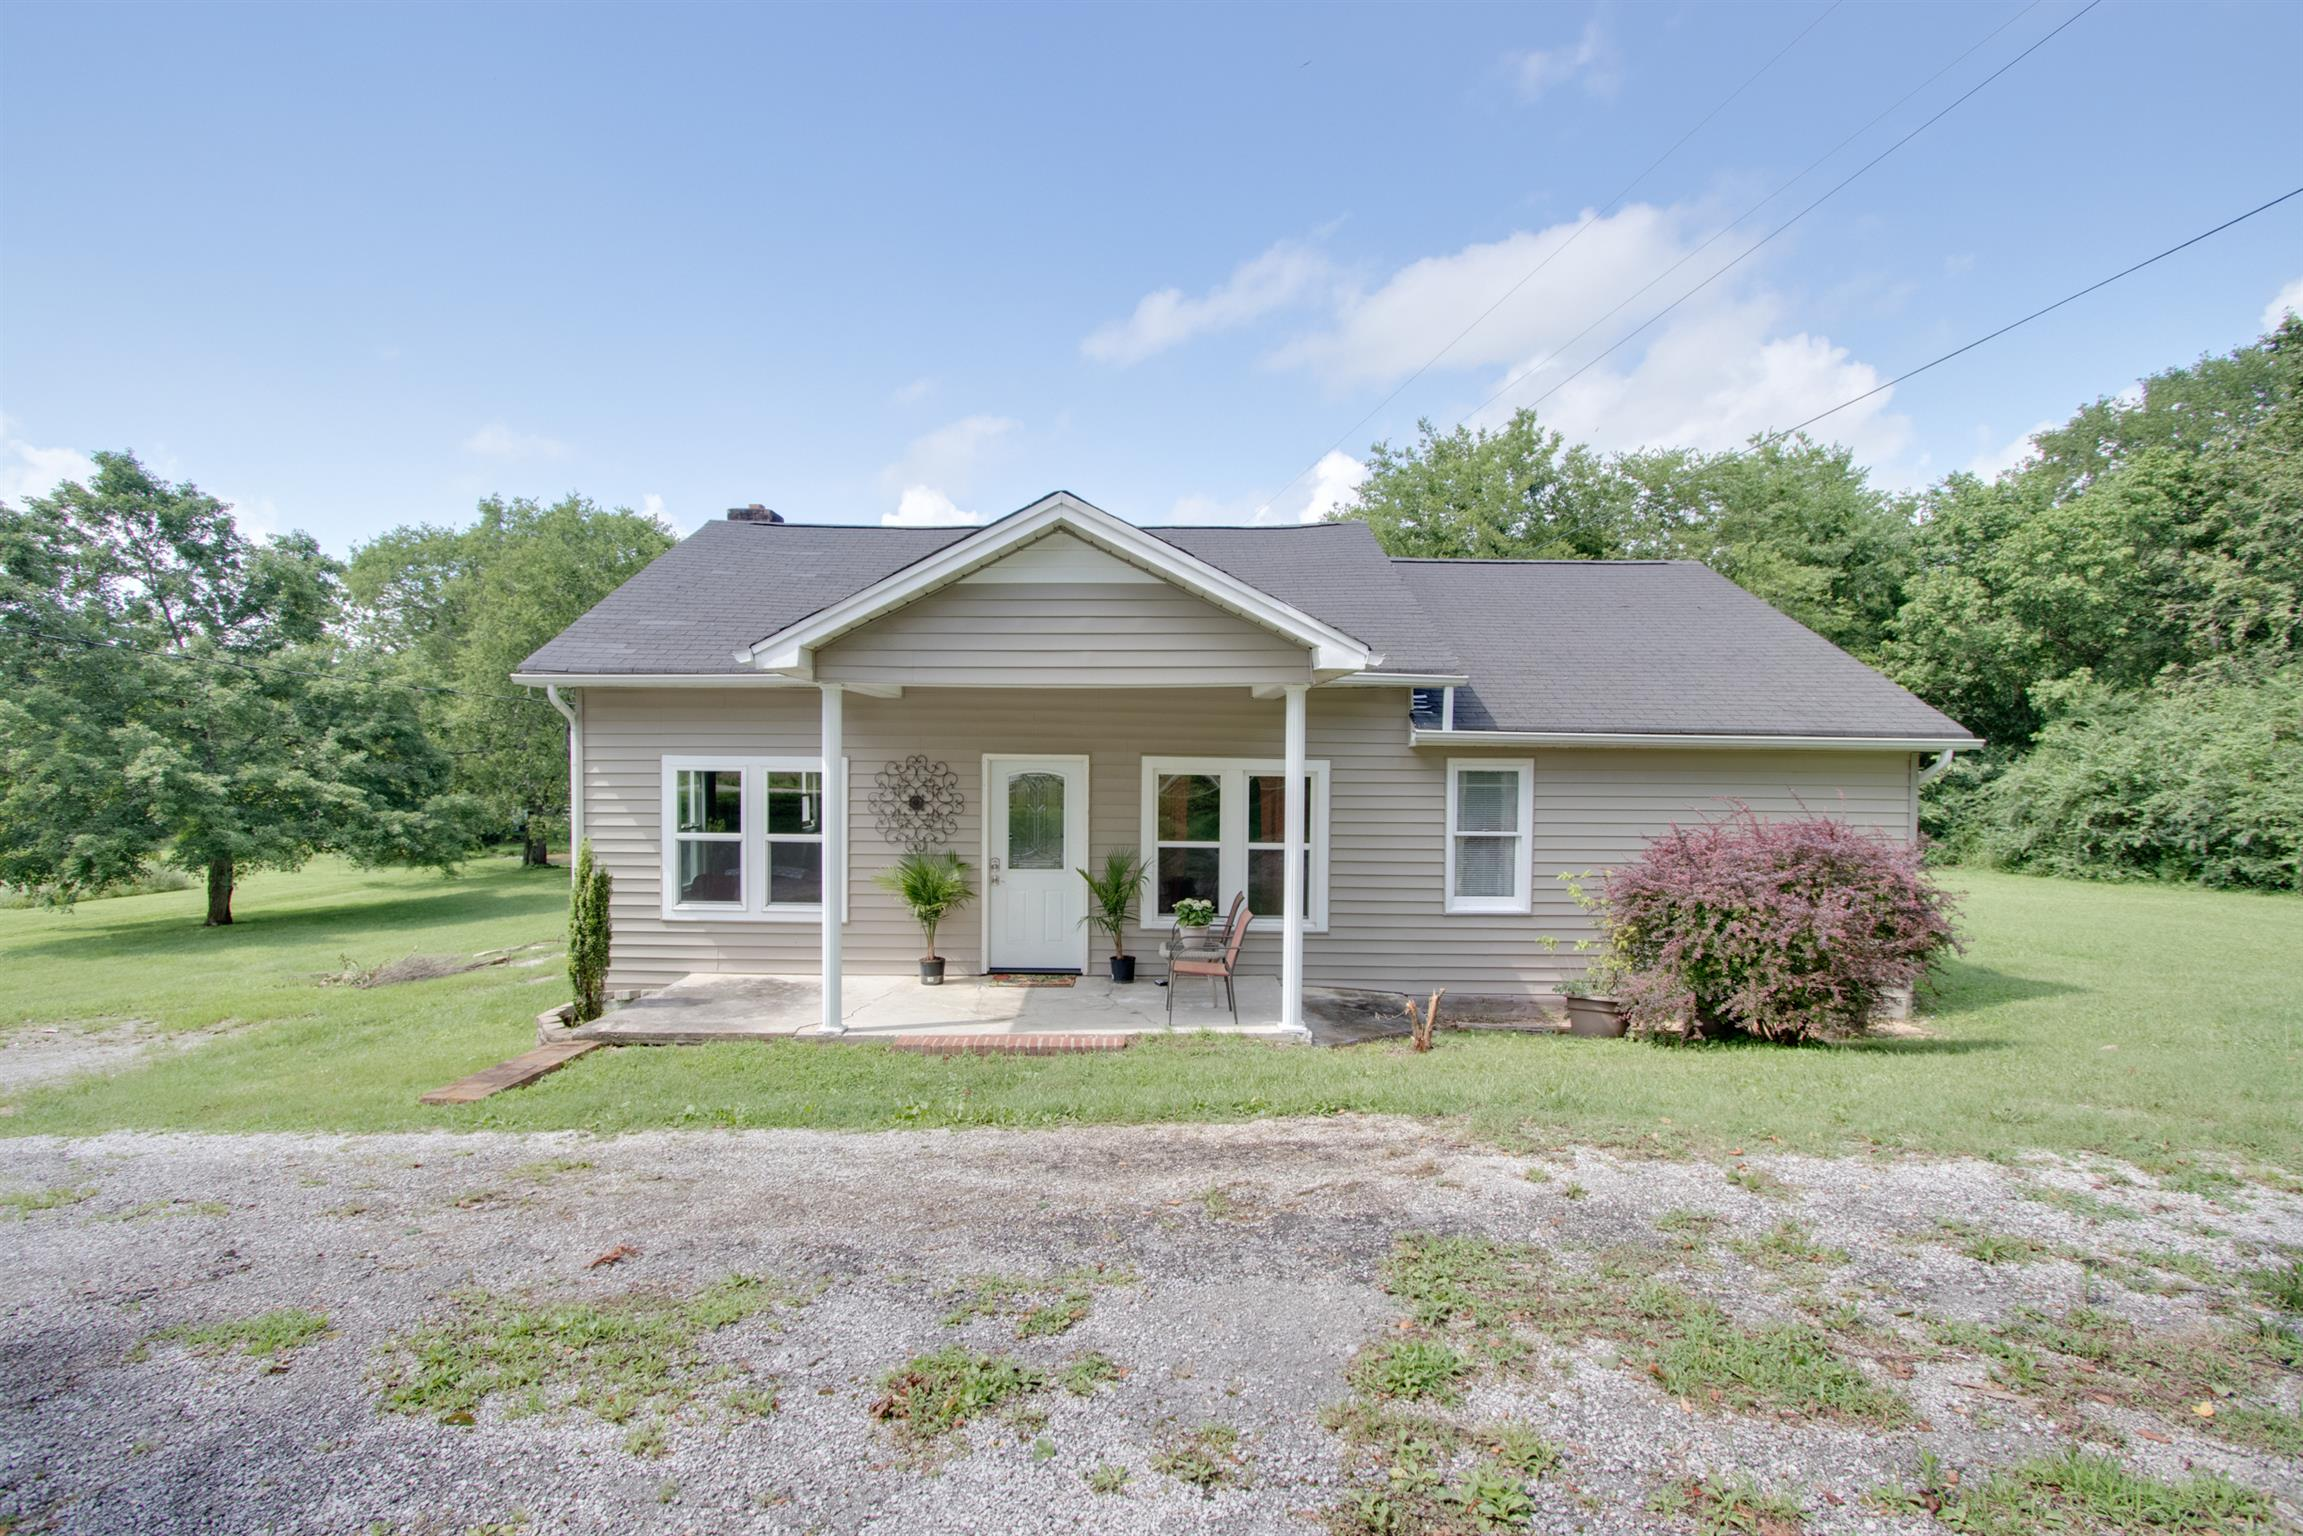 183 Kempville Hwy, Carthage, TN 37030 - Carthage, TN real estate listing